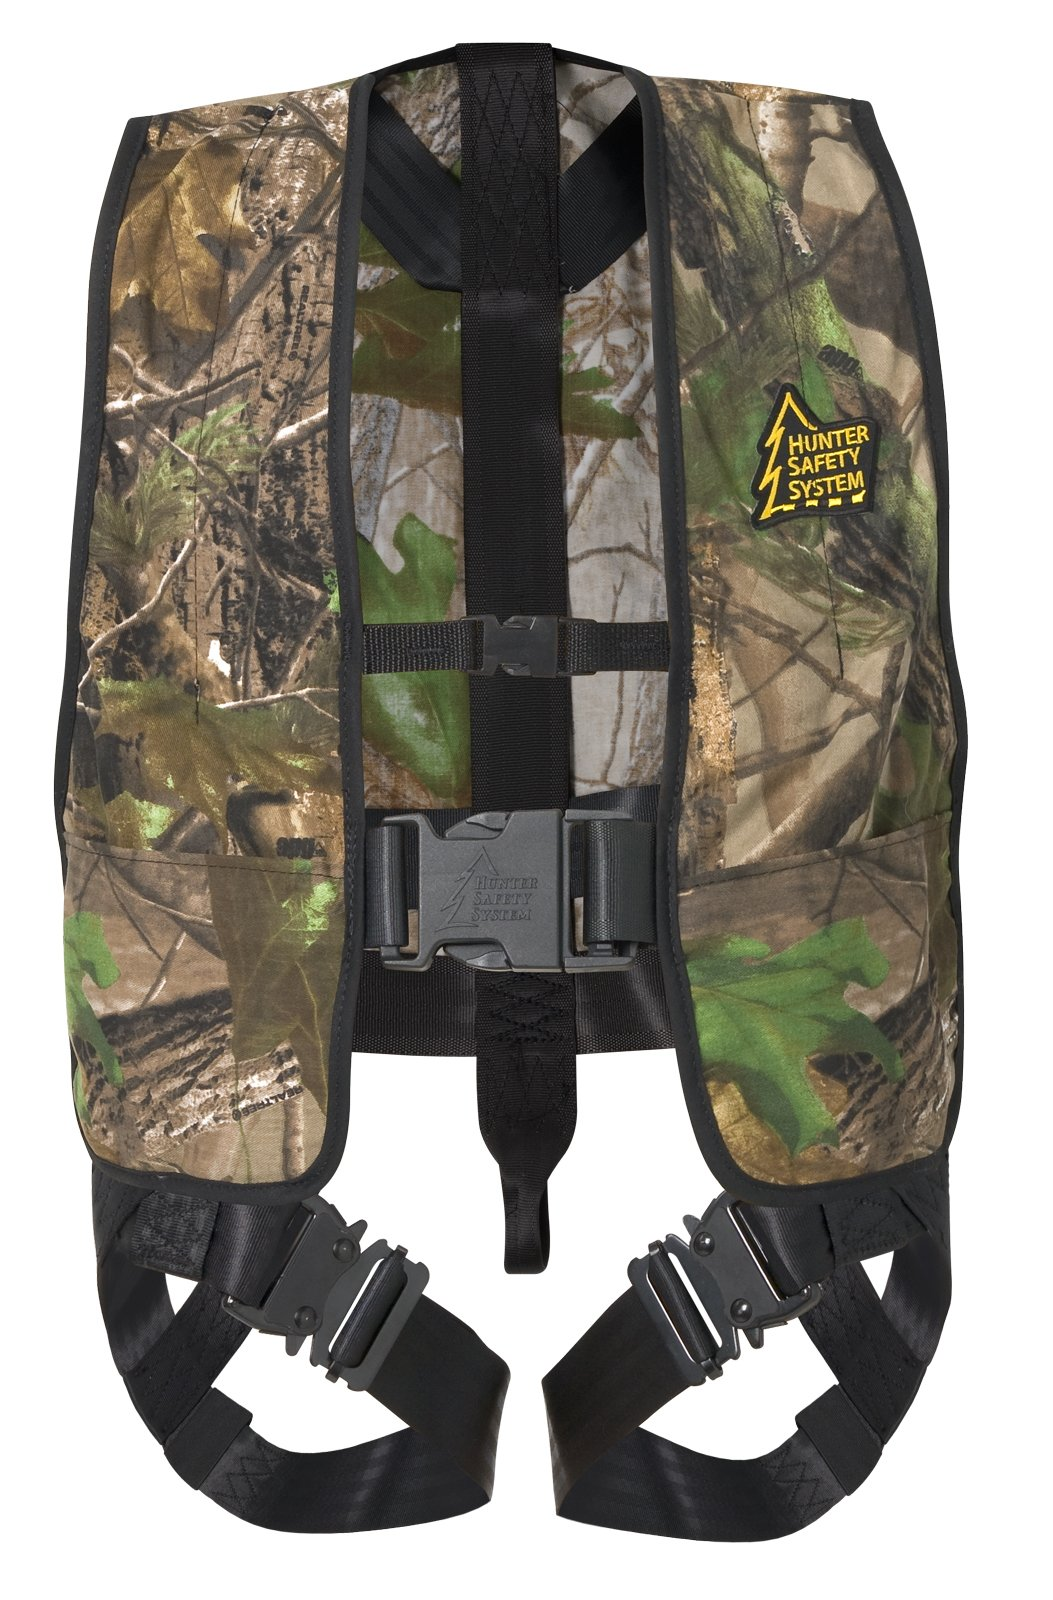 Hunter Safety System Youth HSS-8 Safety Harnesses, Realtree, Youth